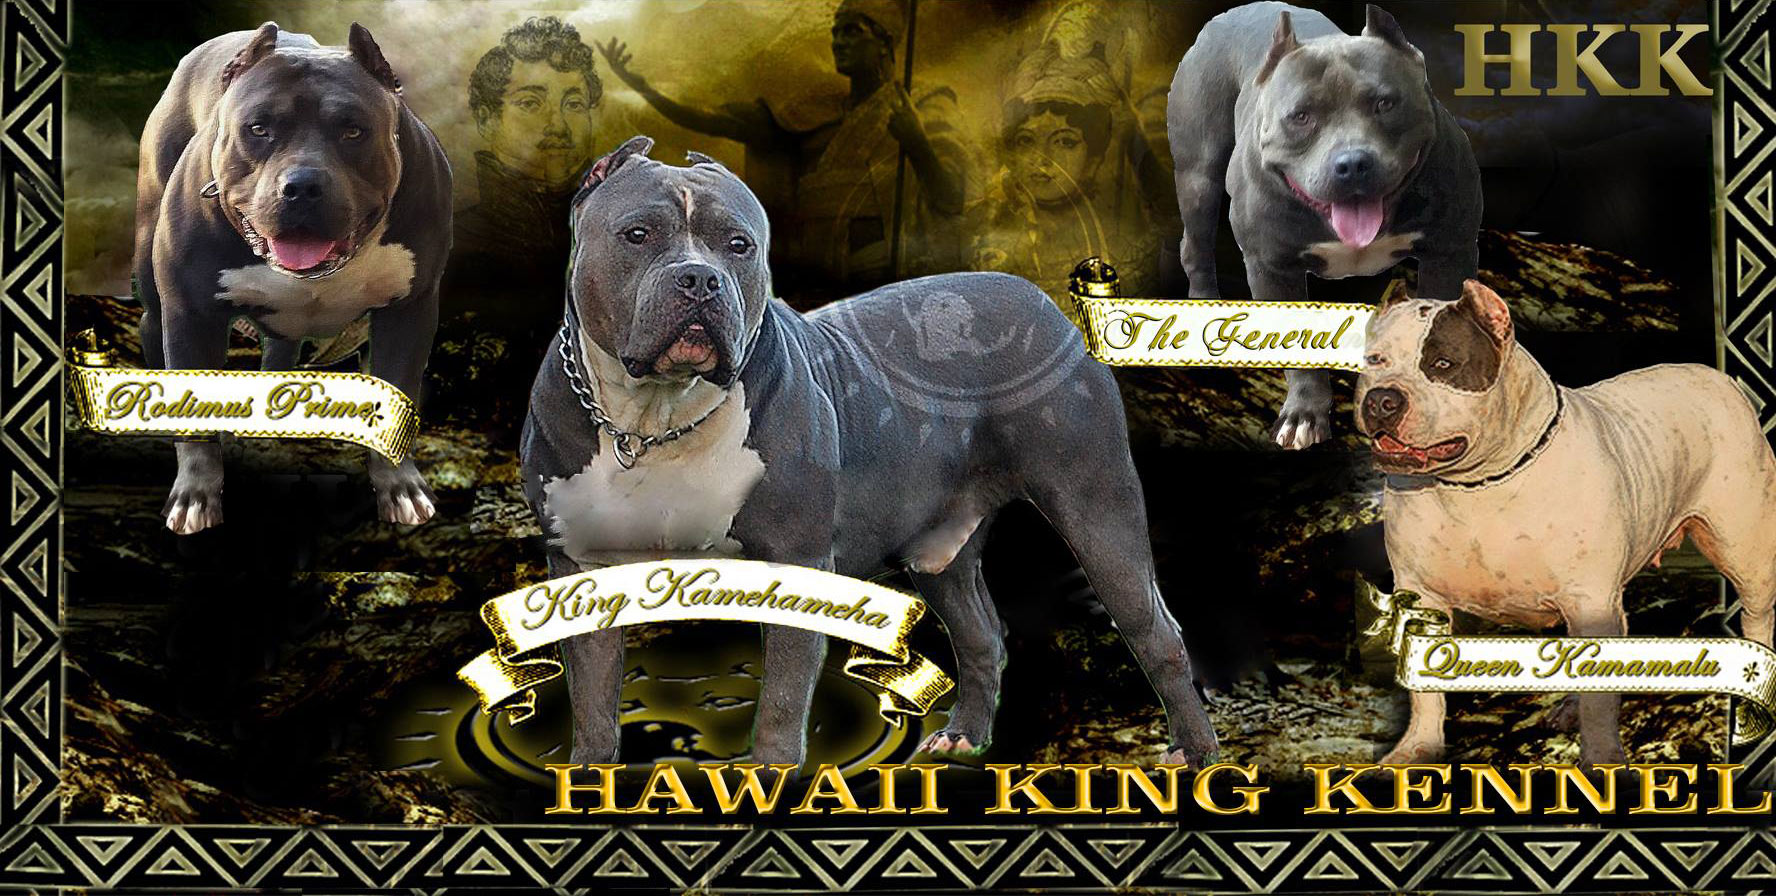 Blue Nose Pitbull Puppies For Sale Hawaii King Kennels